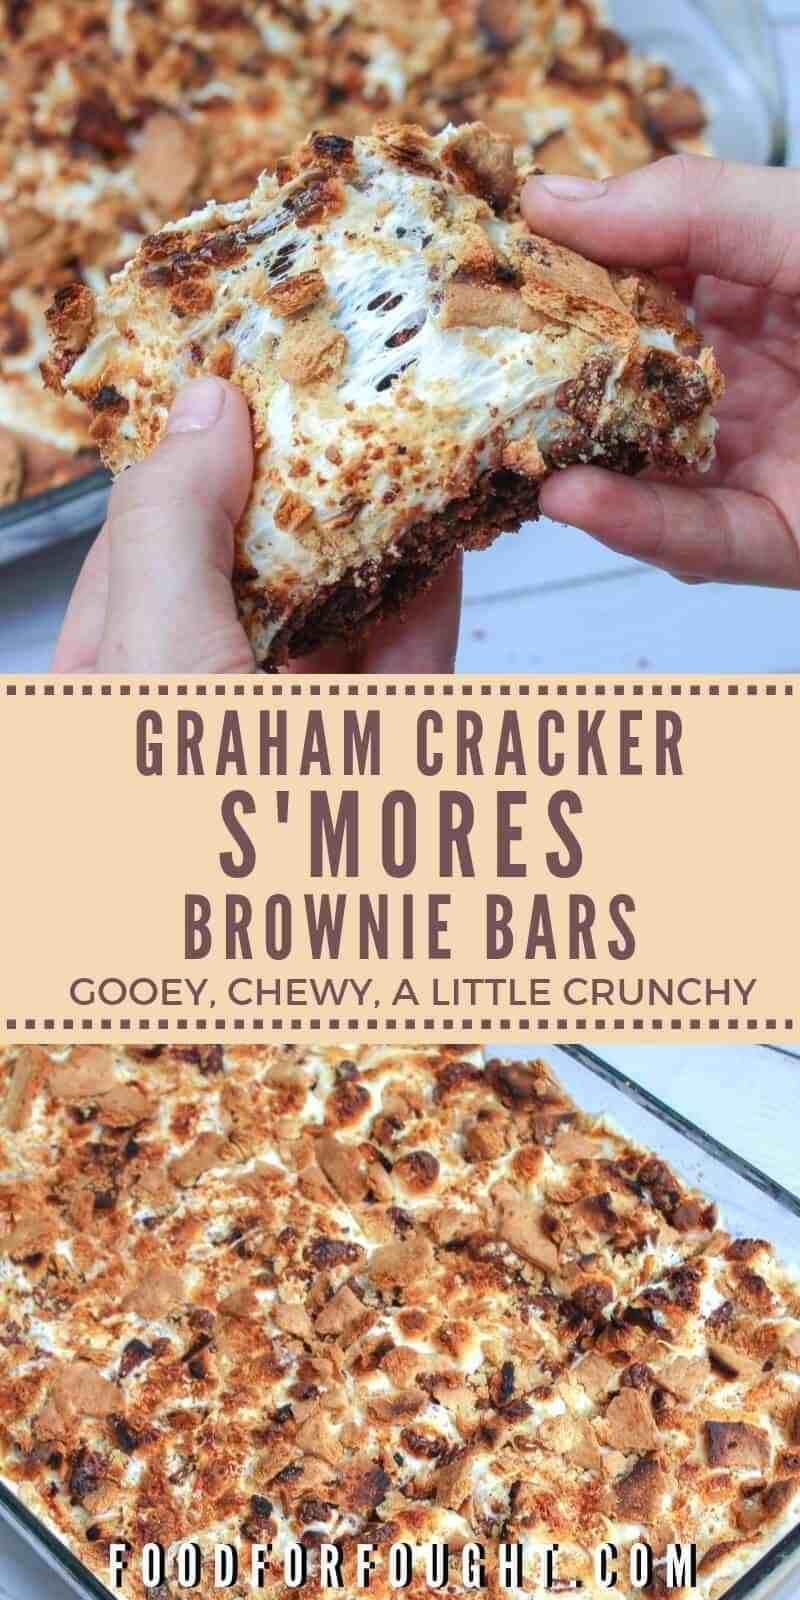 Cracker S'mores Brownie Bars These Graham Crackers S'Mores Brownie Bars are gooey, chewy, a little crunchy, loaded with chocolate, marshmallows and graham cracker bits for a gooey, fudgy dessert you'll love!These Graham Crackers S'Mores Brownie Bars are gooey, chewy, a little crunchy, loaded with chocolate, marshmallows and graham cracker bits for ...